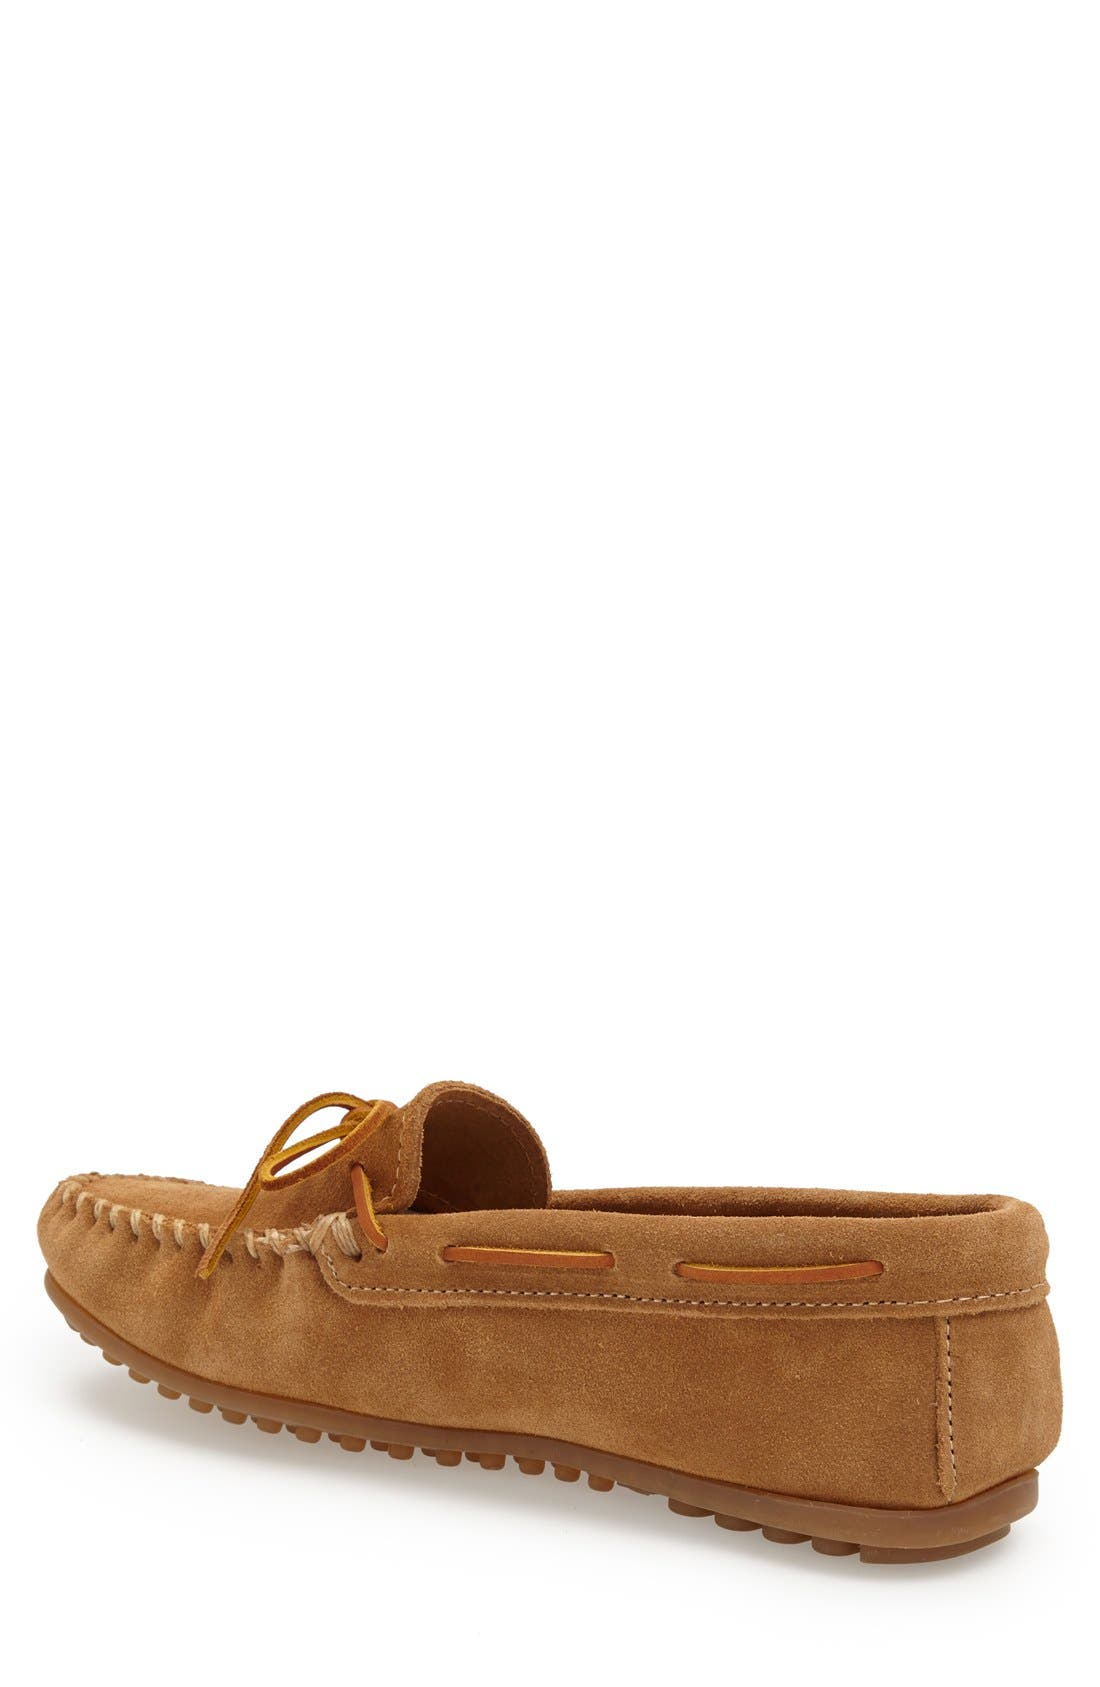 Suede Driving Shoe,                             Alternate thumbnail 3, color,                             TAUPE